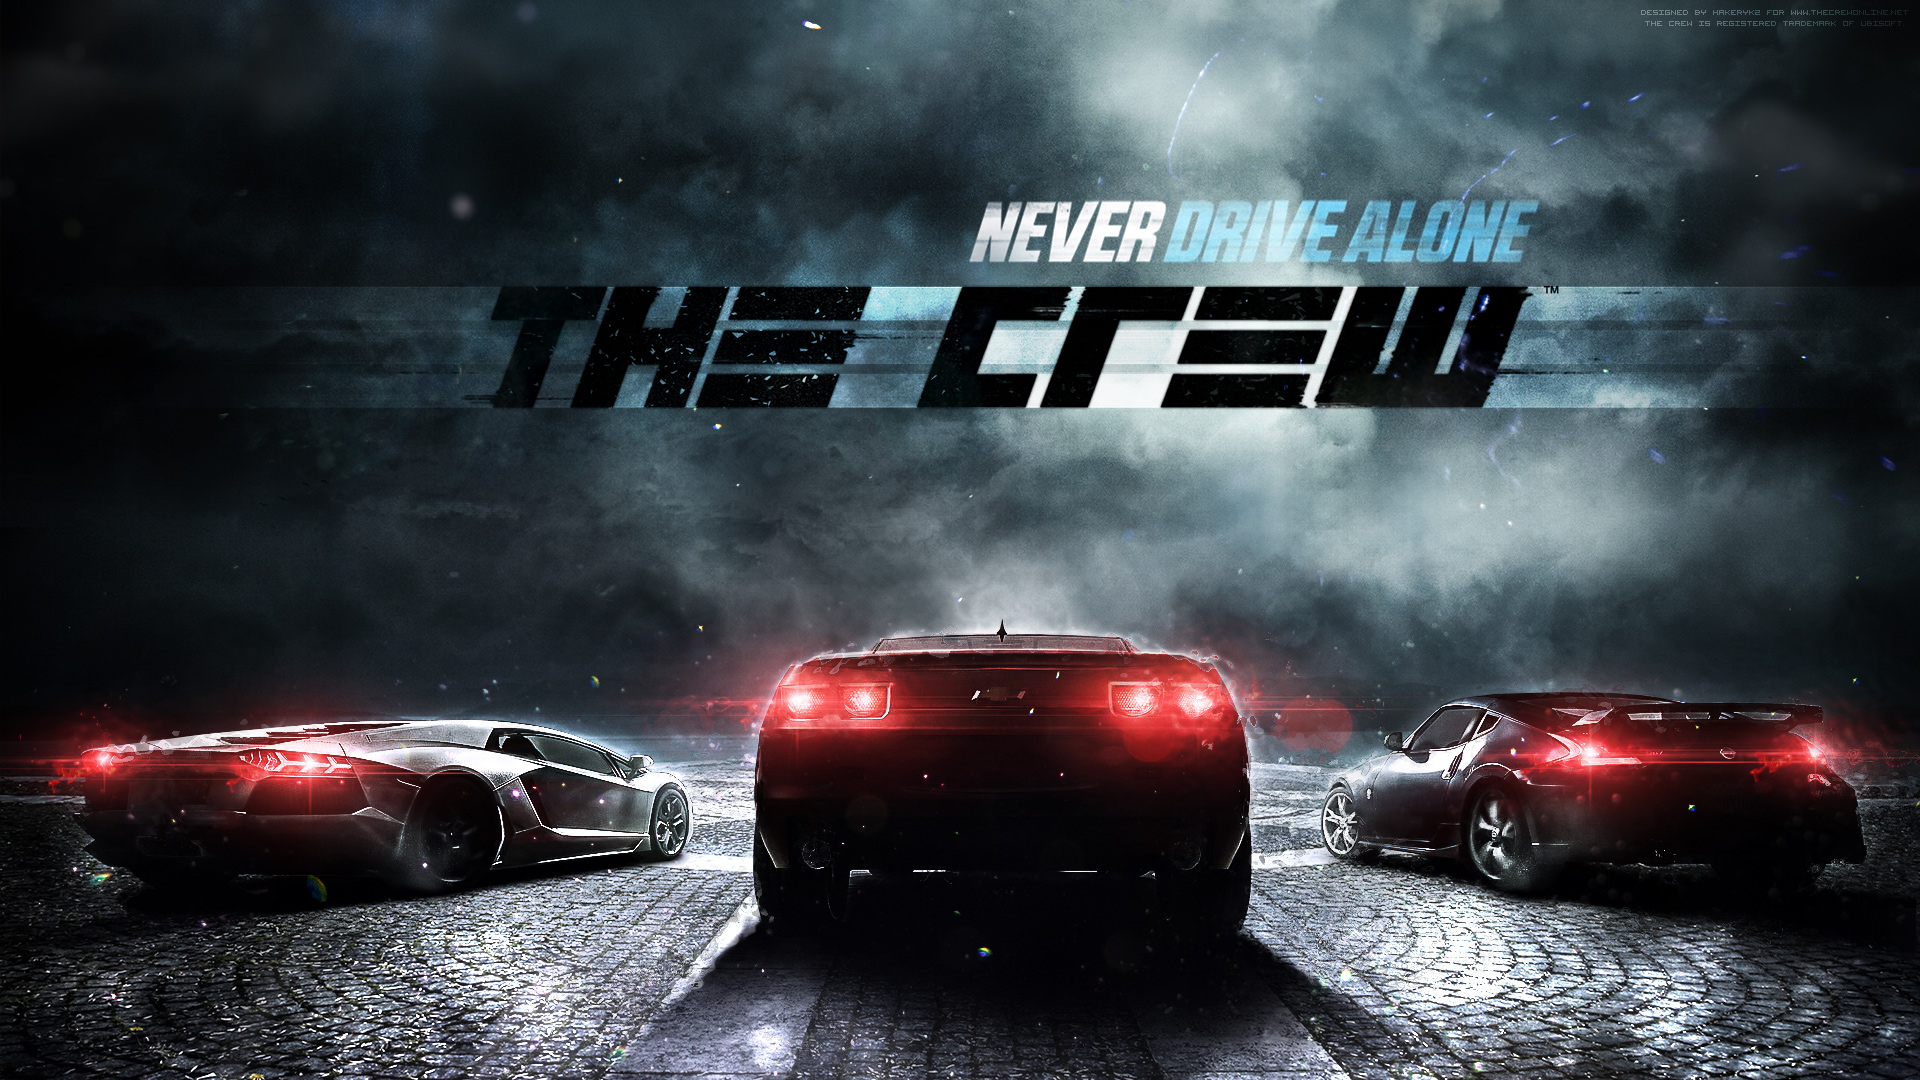 Spring this year will see the release of The Crew for Playstaion 4 and Xbox One